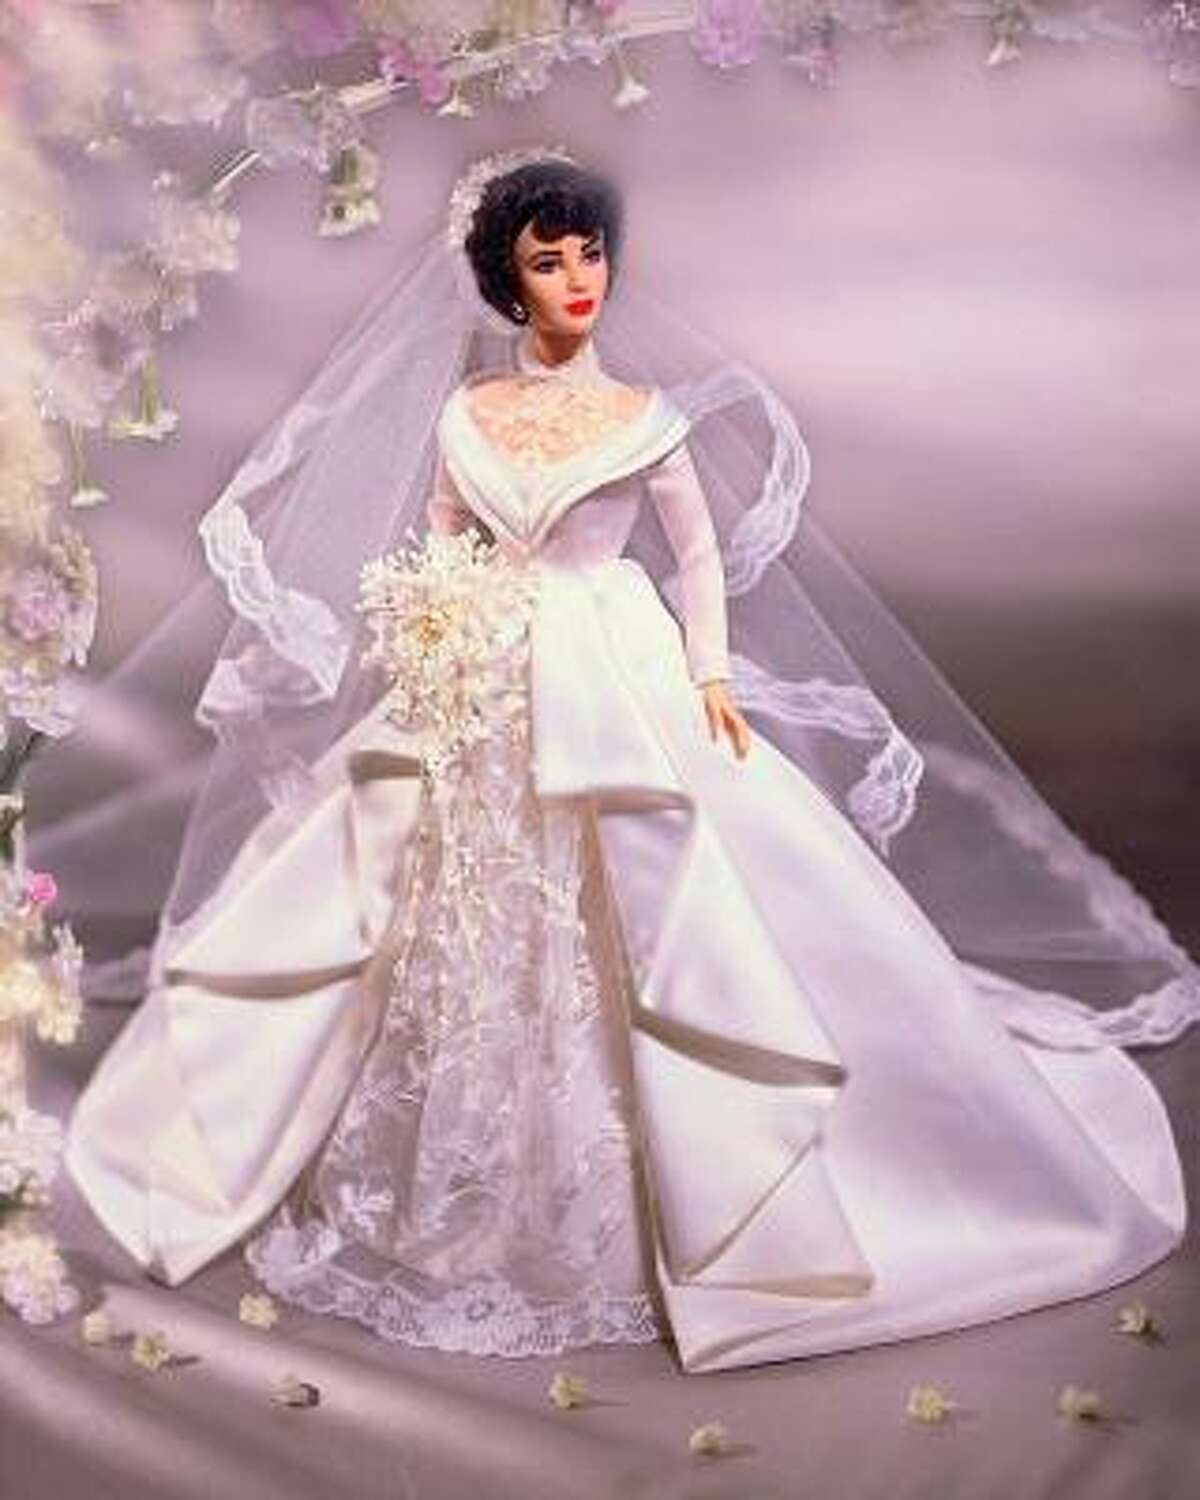 Elizabeth Taylor, who has died at age 79, was as famous for her numerous walks down the aisle as for her movies. A Mattel doll even featured Taylor with veil and bouquet in Father of the Bride, a film that came out just days after she got married for the first time at age 18. She married eight times in all. Here's a look at those marriages. Associated Press reporter Bob Thomas contributed to this report.